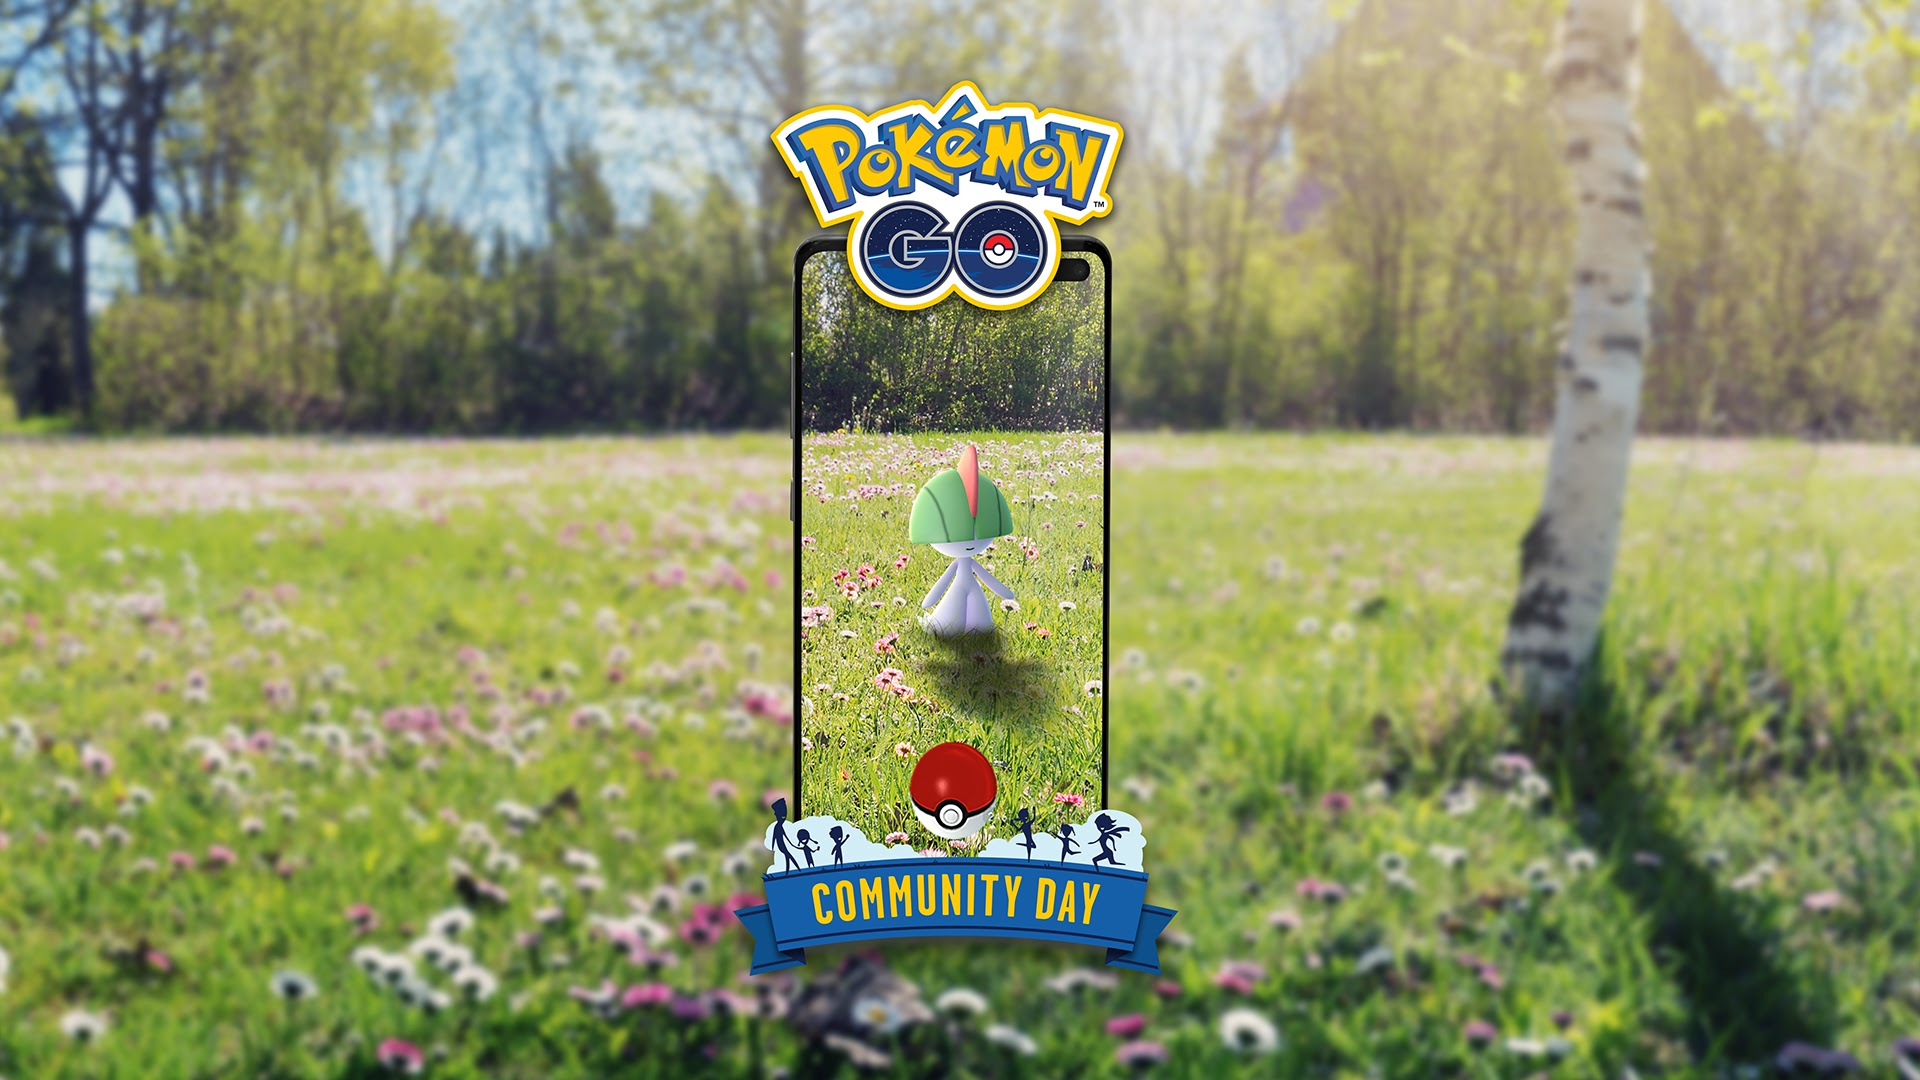 Pokemon Go Community Day event start time and event rewards